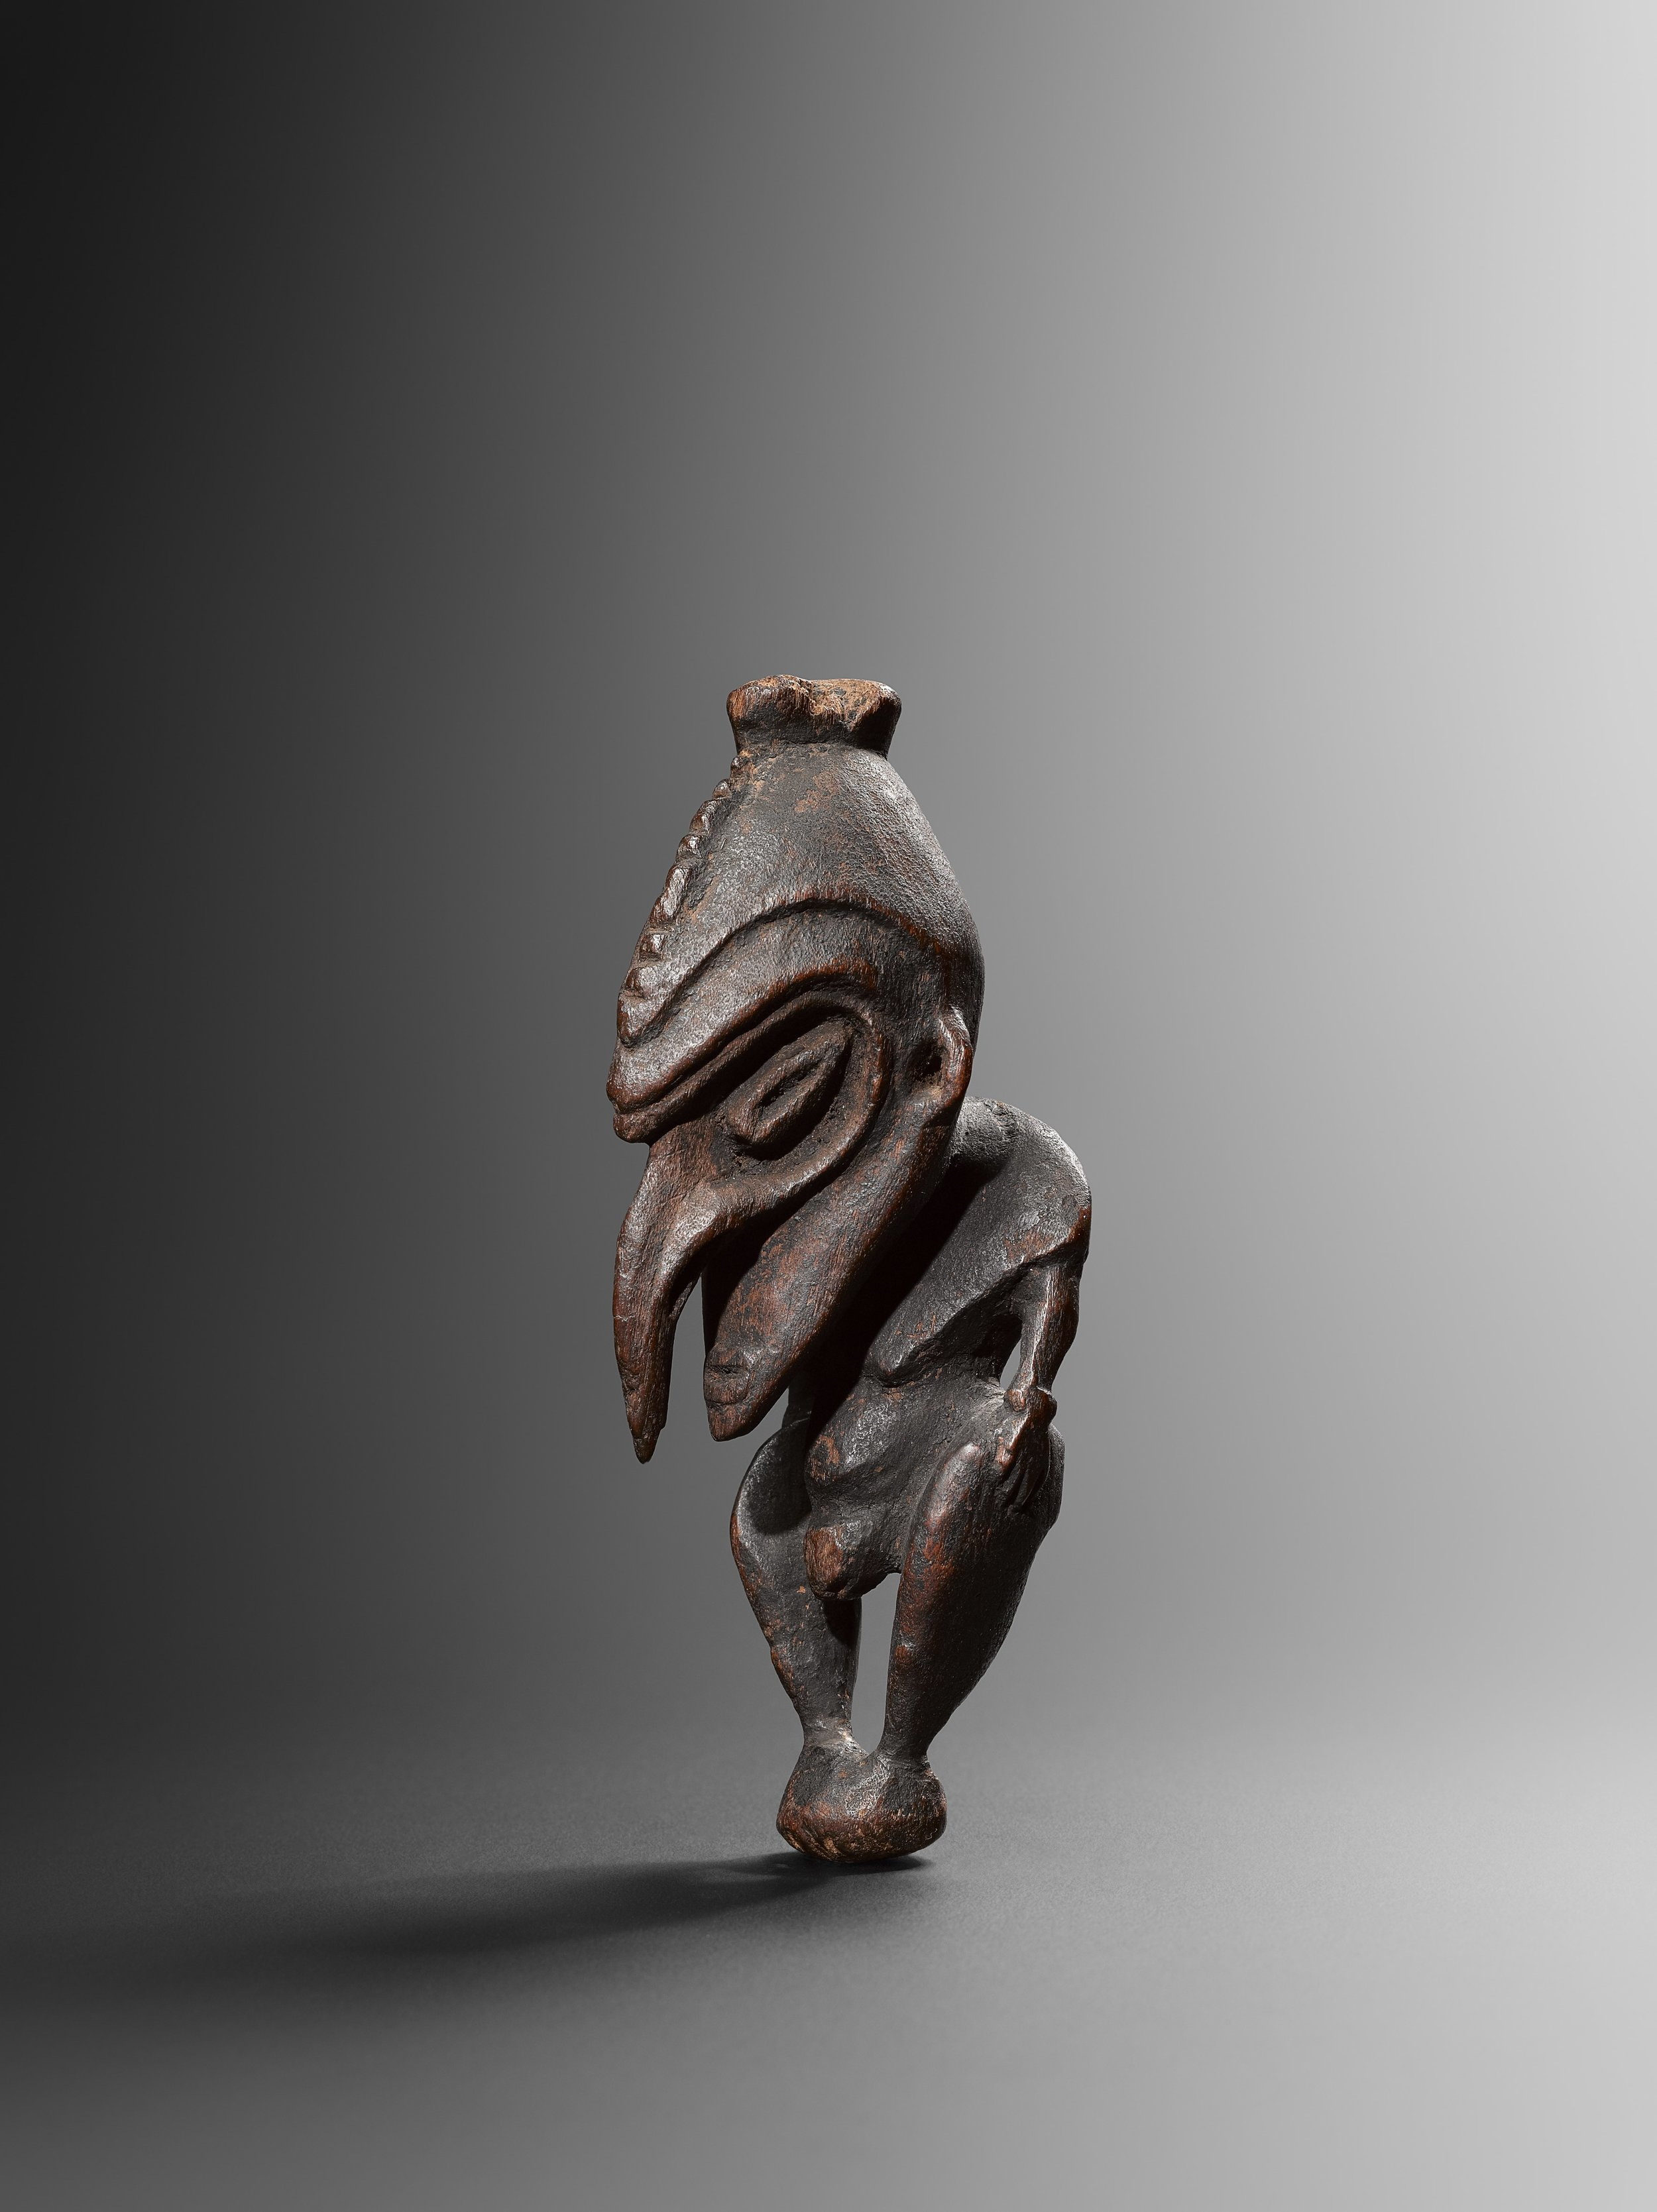 Charm figure. Ramu. Wood. 16 cm. Julius Carlebach, New York. Dr David V. Becker, New York, acquired from the above on 22 March 1958. Sotheby's New York, 16 May 2014. Bruce Frank, New York. © Hugues Dubois, Brussels/Paris